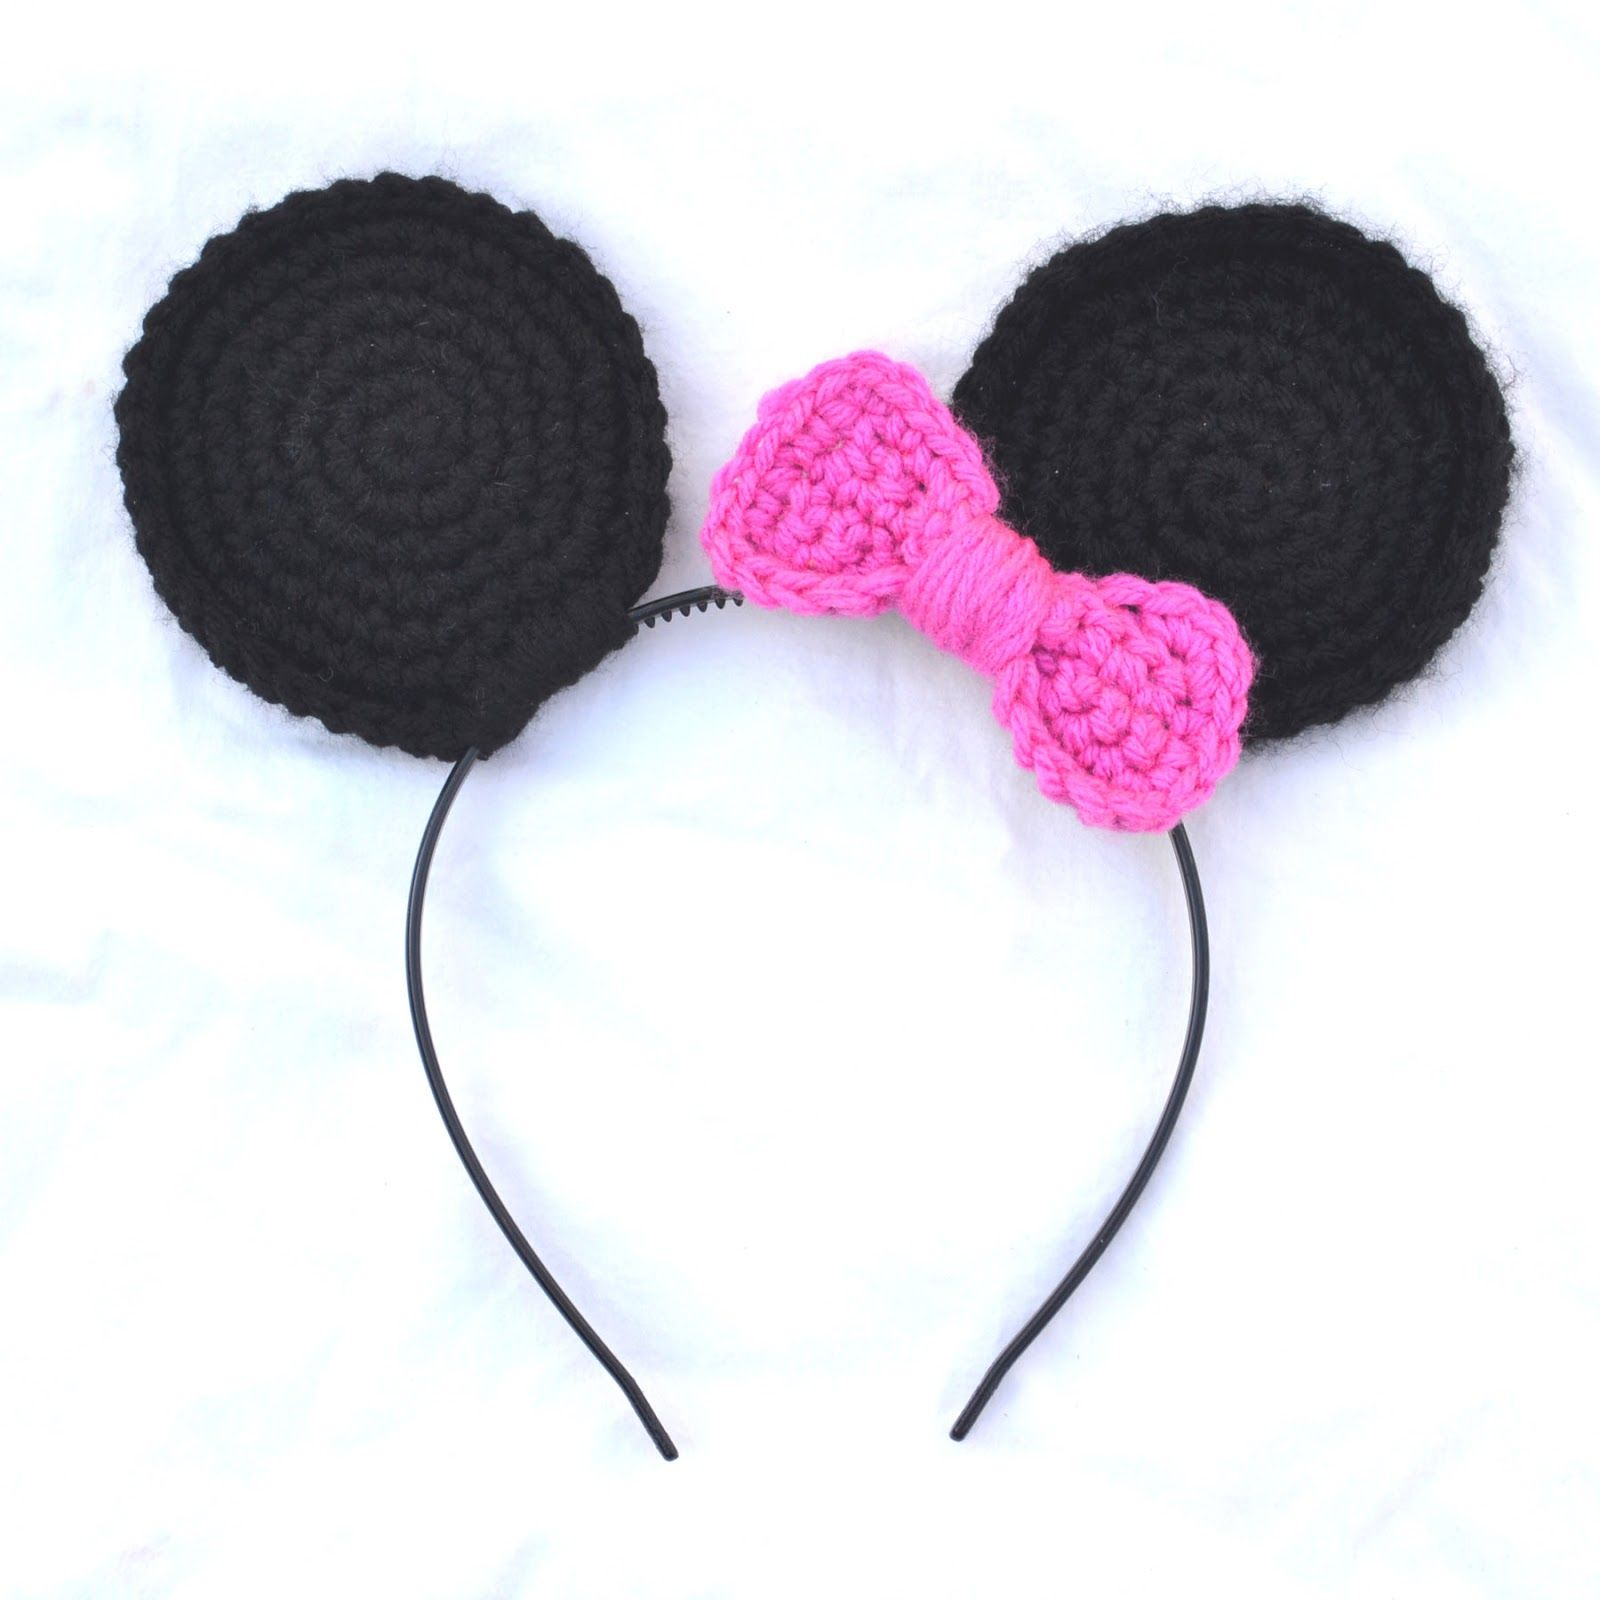 Mini Mouse Ears (crochet) - Crochet in Color | Crochet baby ...